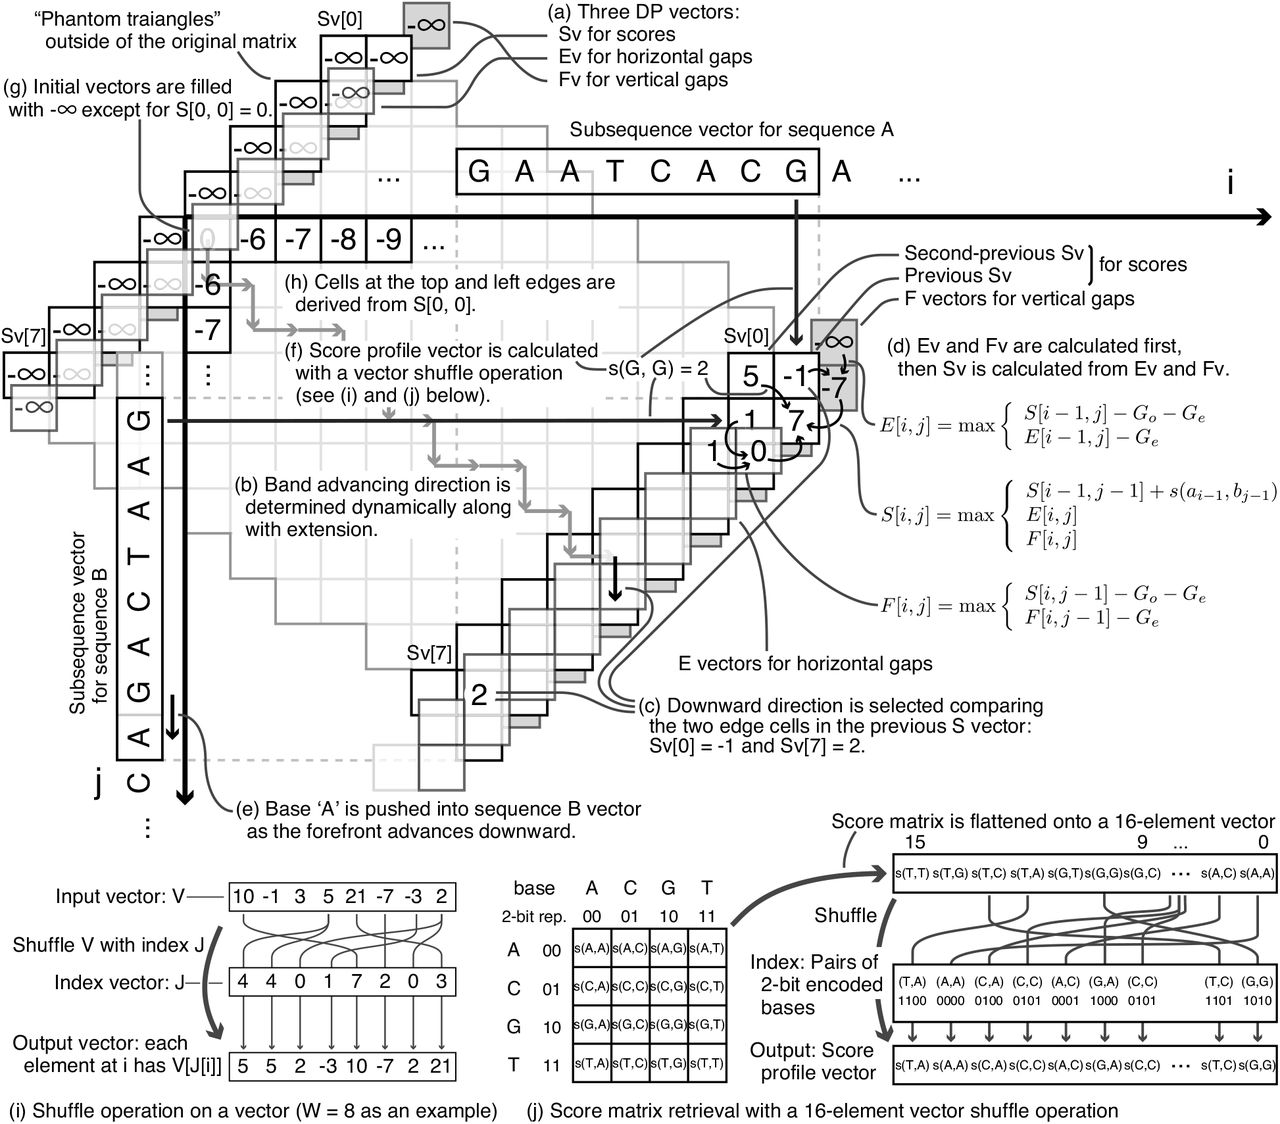 Acceleration of Nucleotide Semi-Global Alignment with